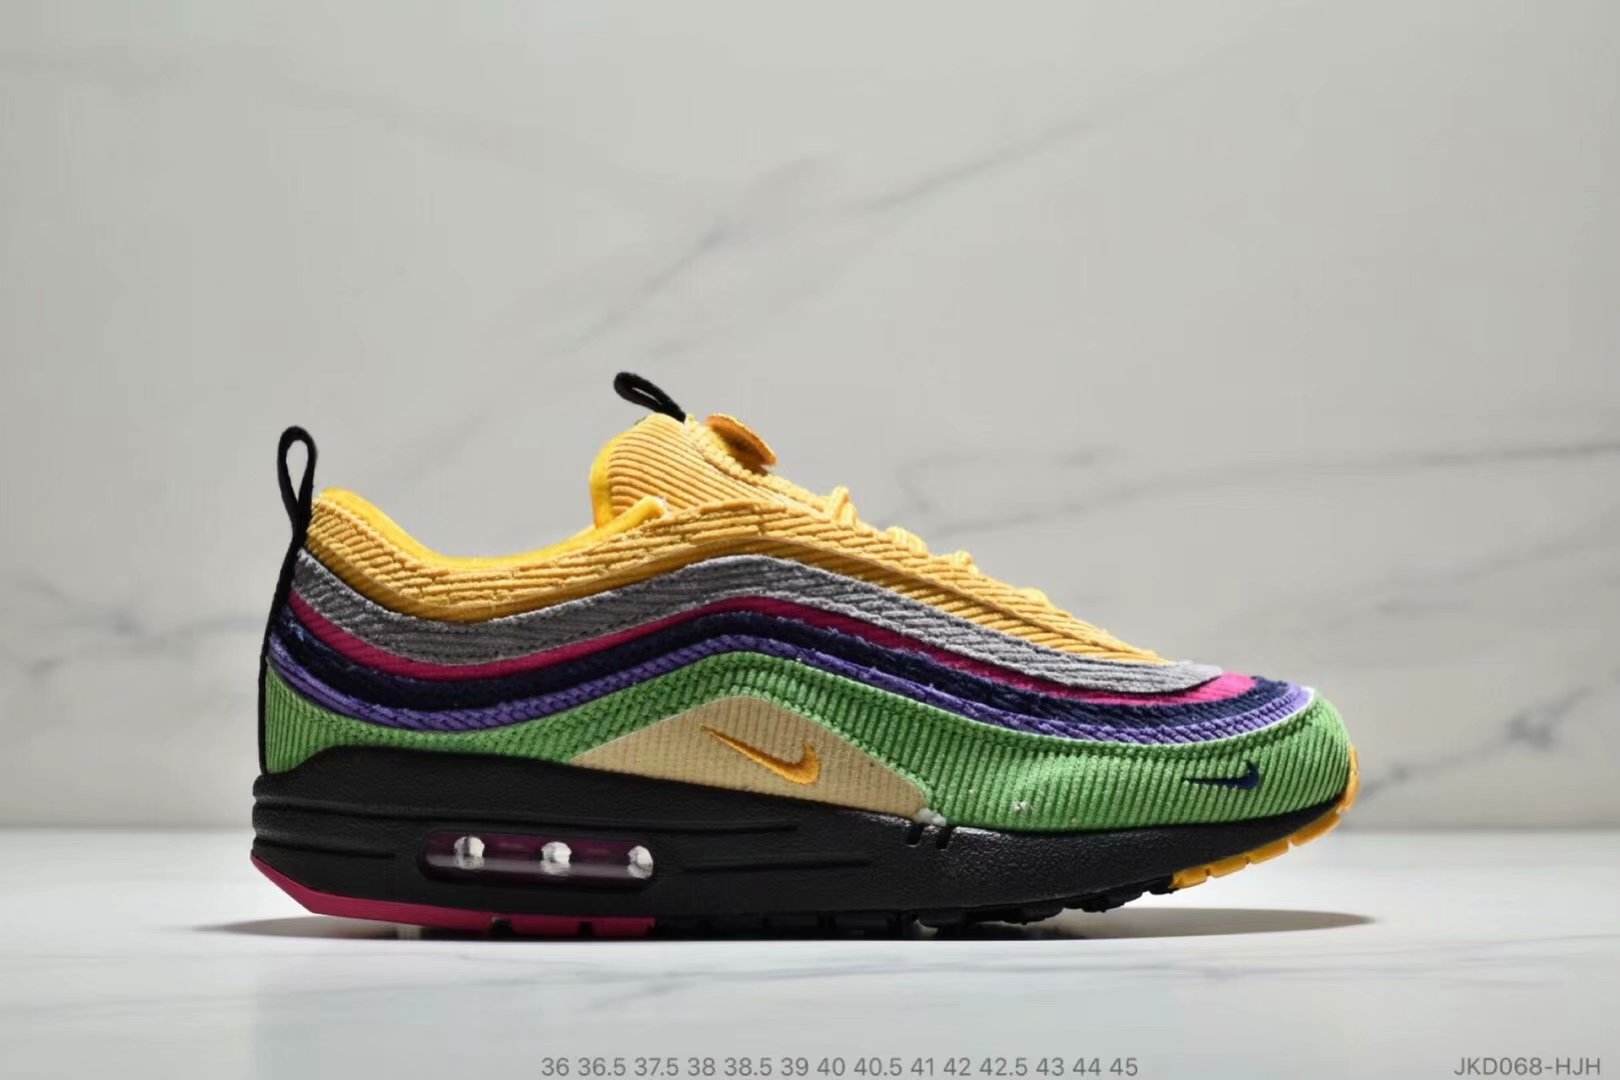 Womens Nike Air Max 87 1 Sean Wotherspoon Grass Green Yellow Grey Purple Black On VaporMaxRunning